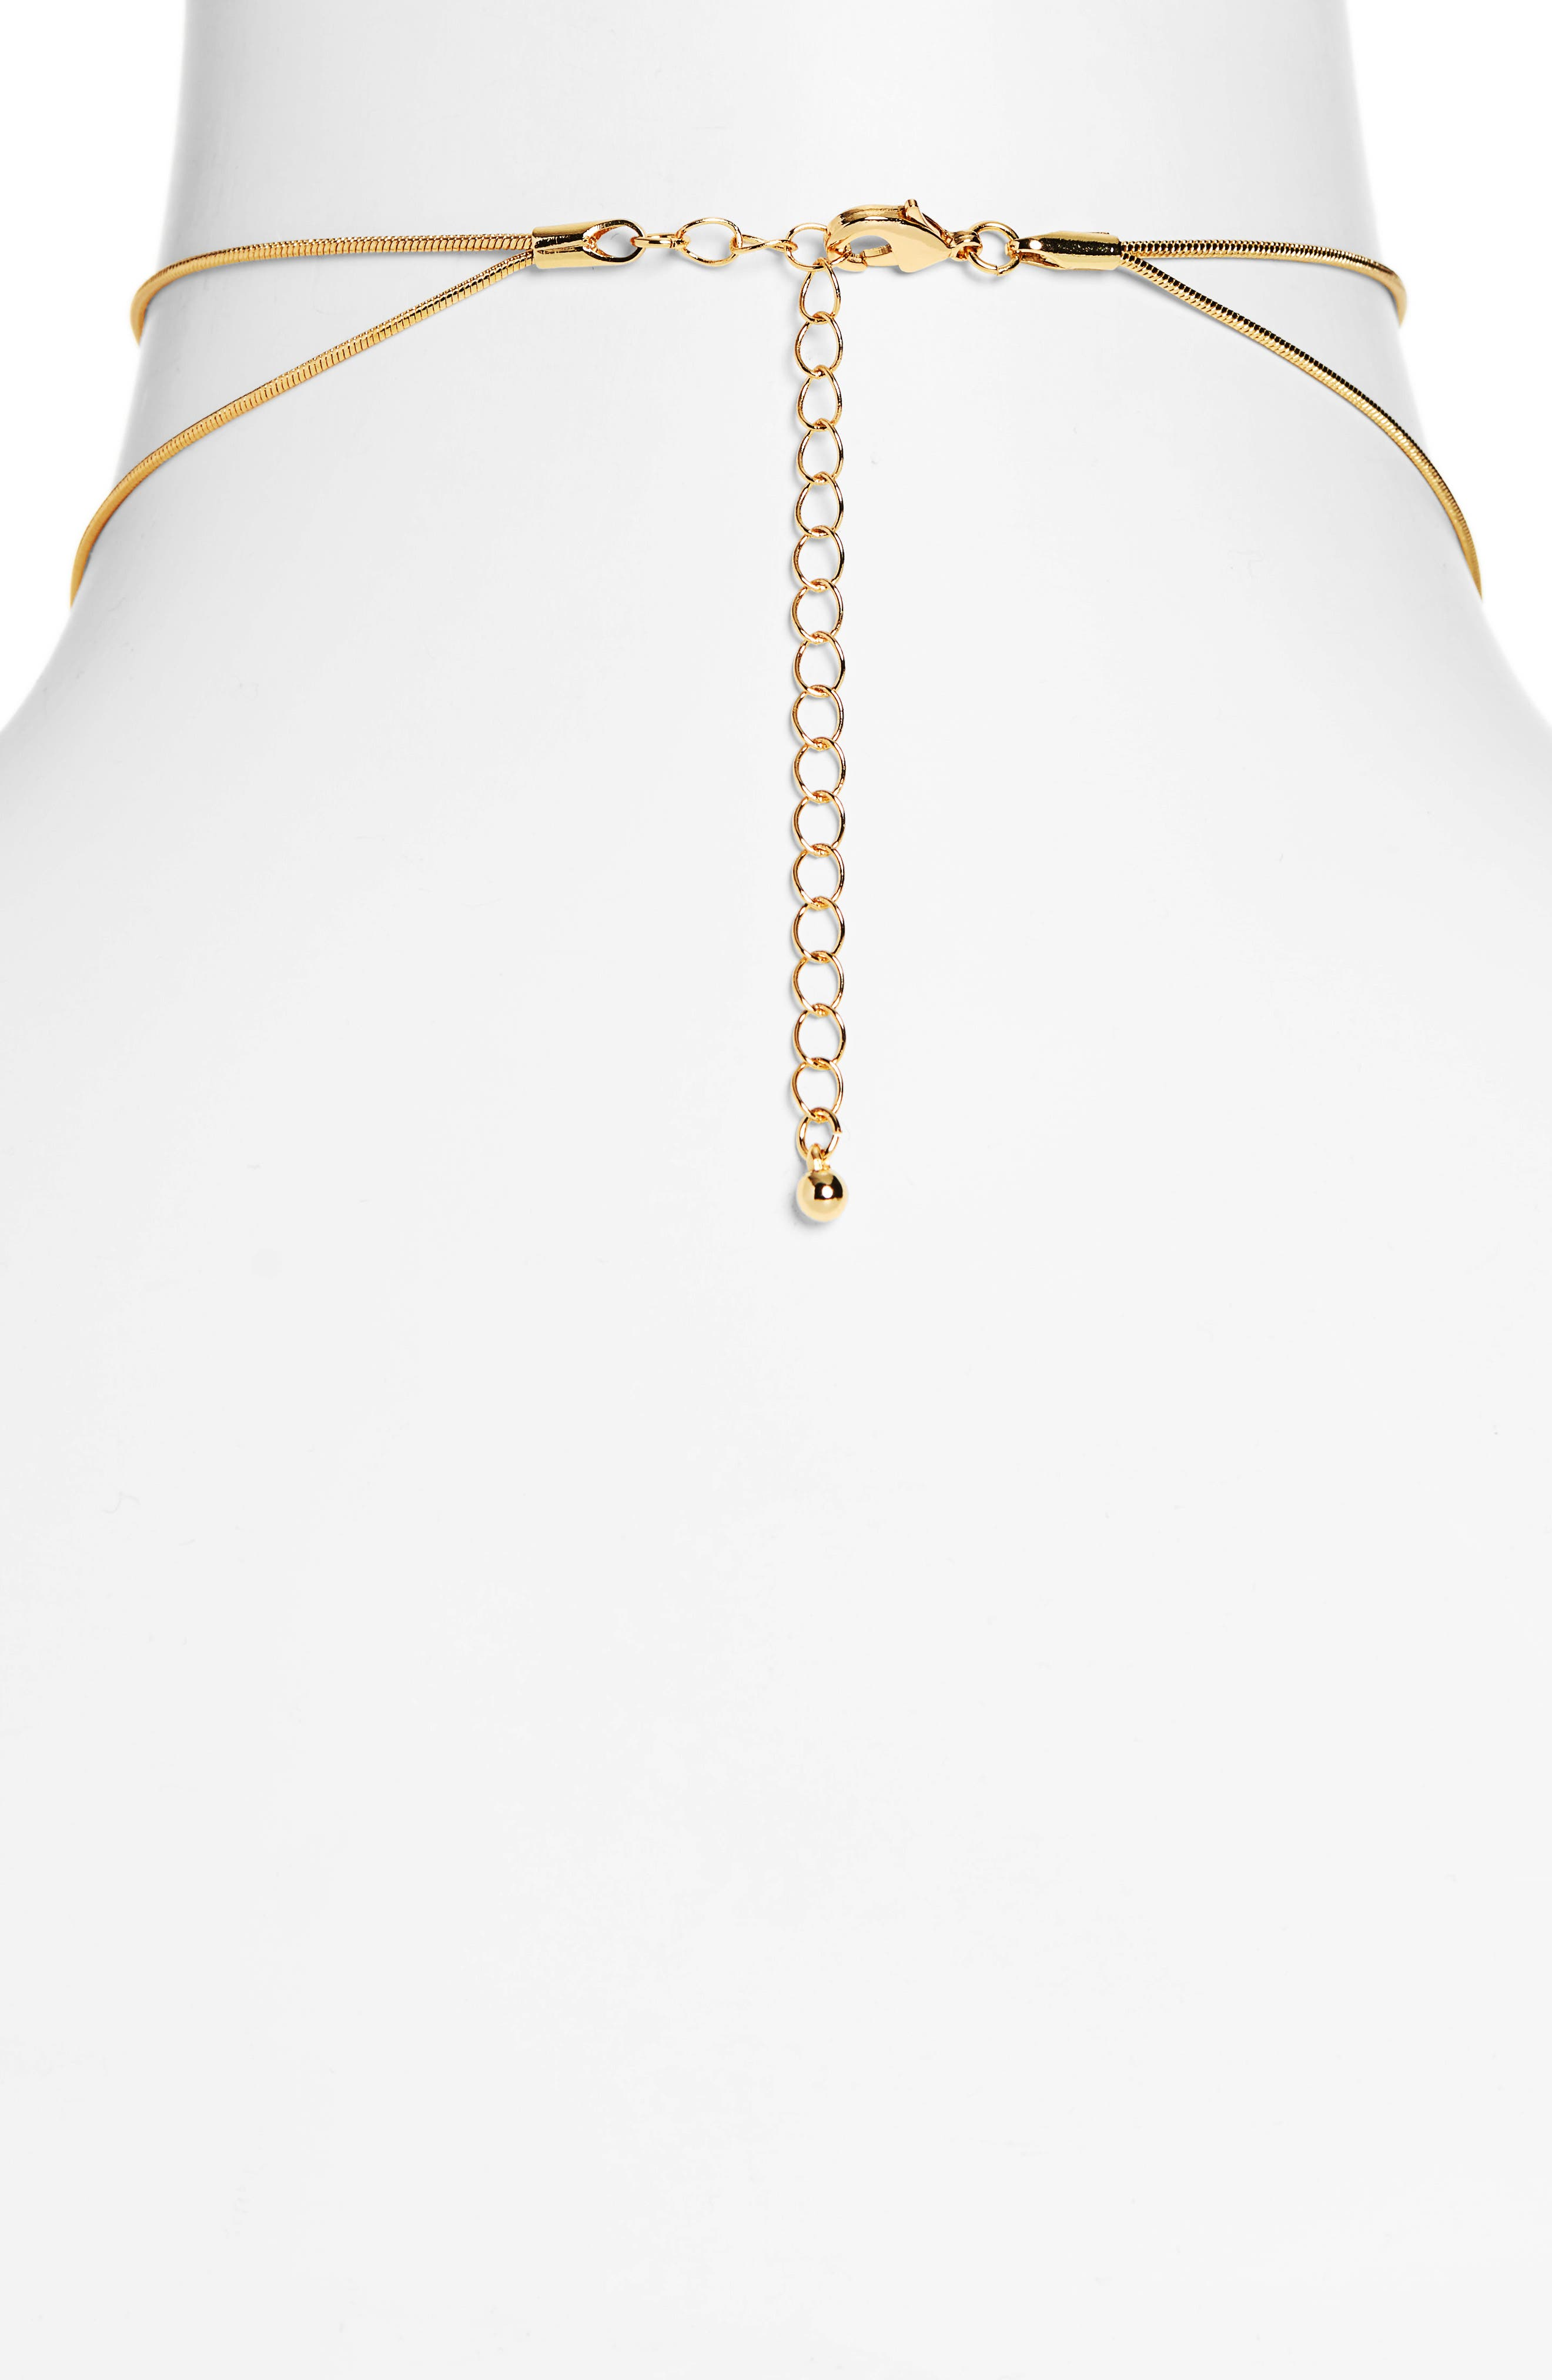 UNCOMMON JAMES BY KRISTIN CAVALLARI, Tennessee Multistrand Necklace, Alternate thumbnail 2, color, GOLD